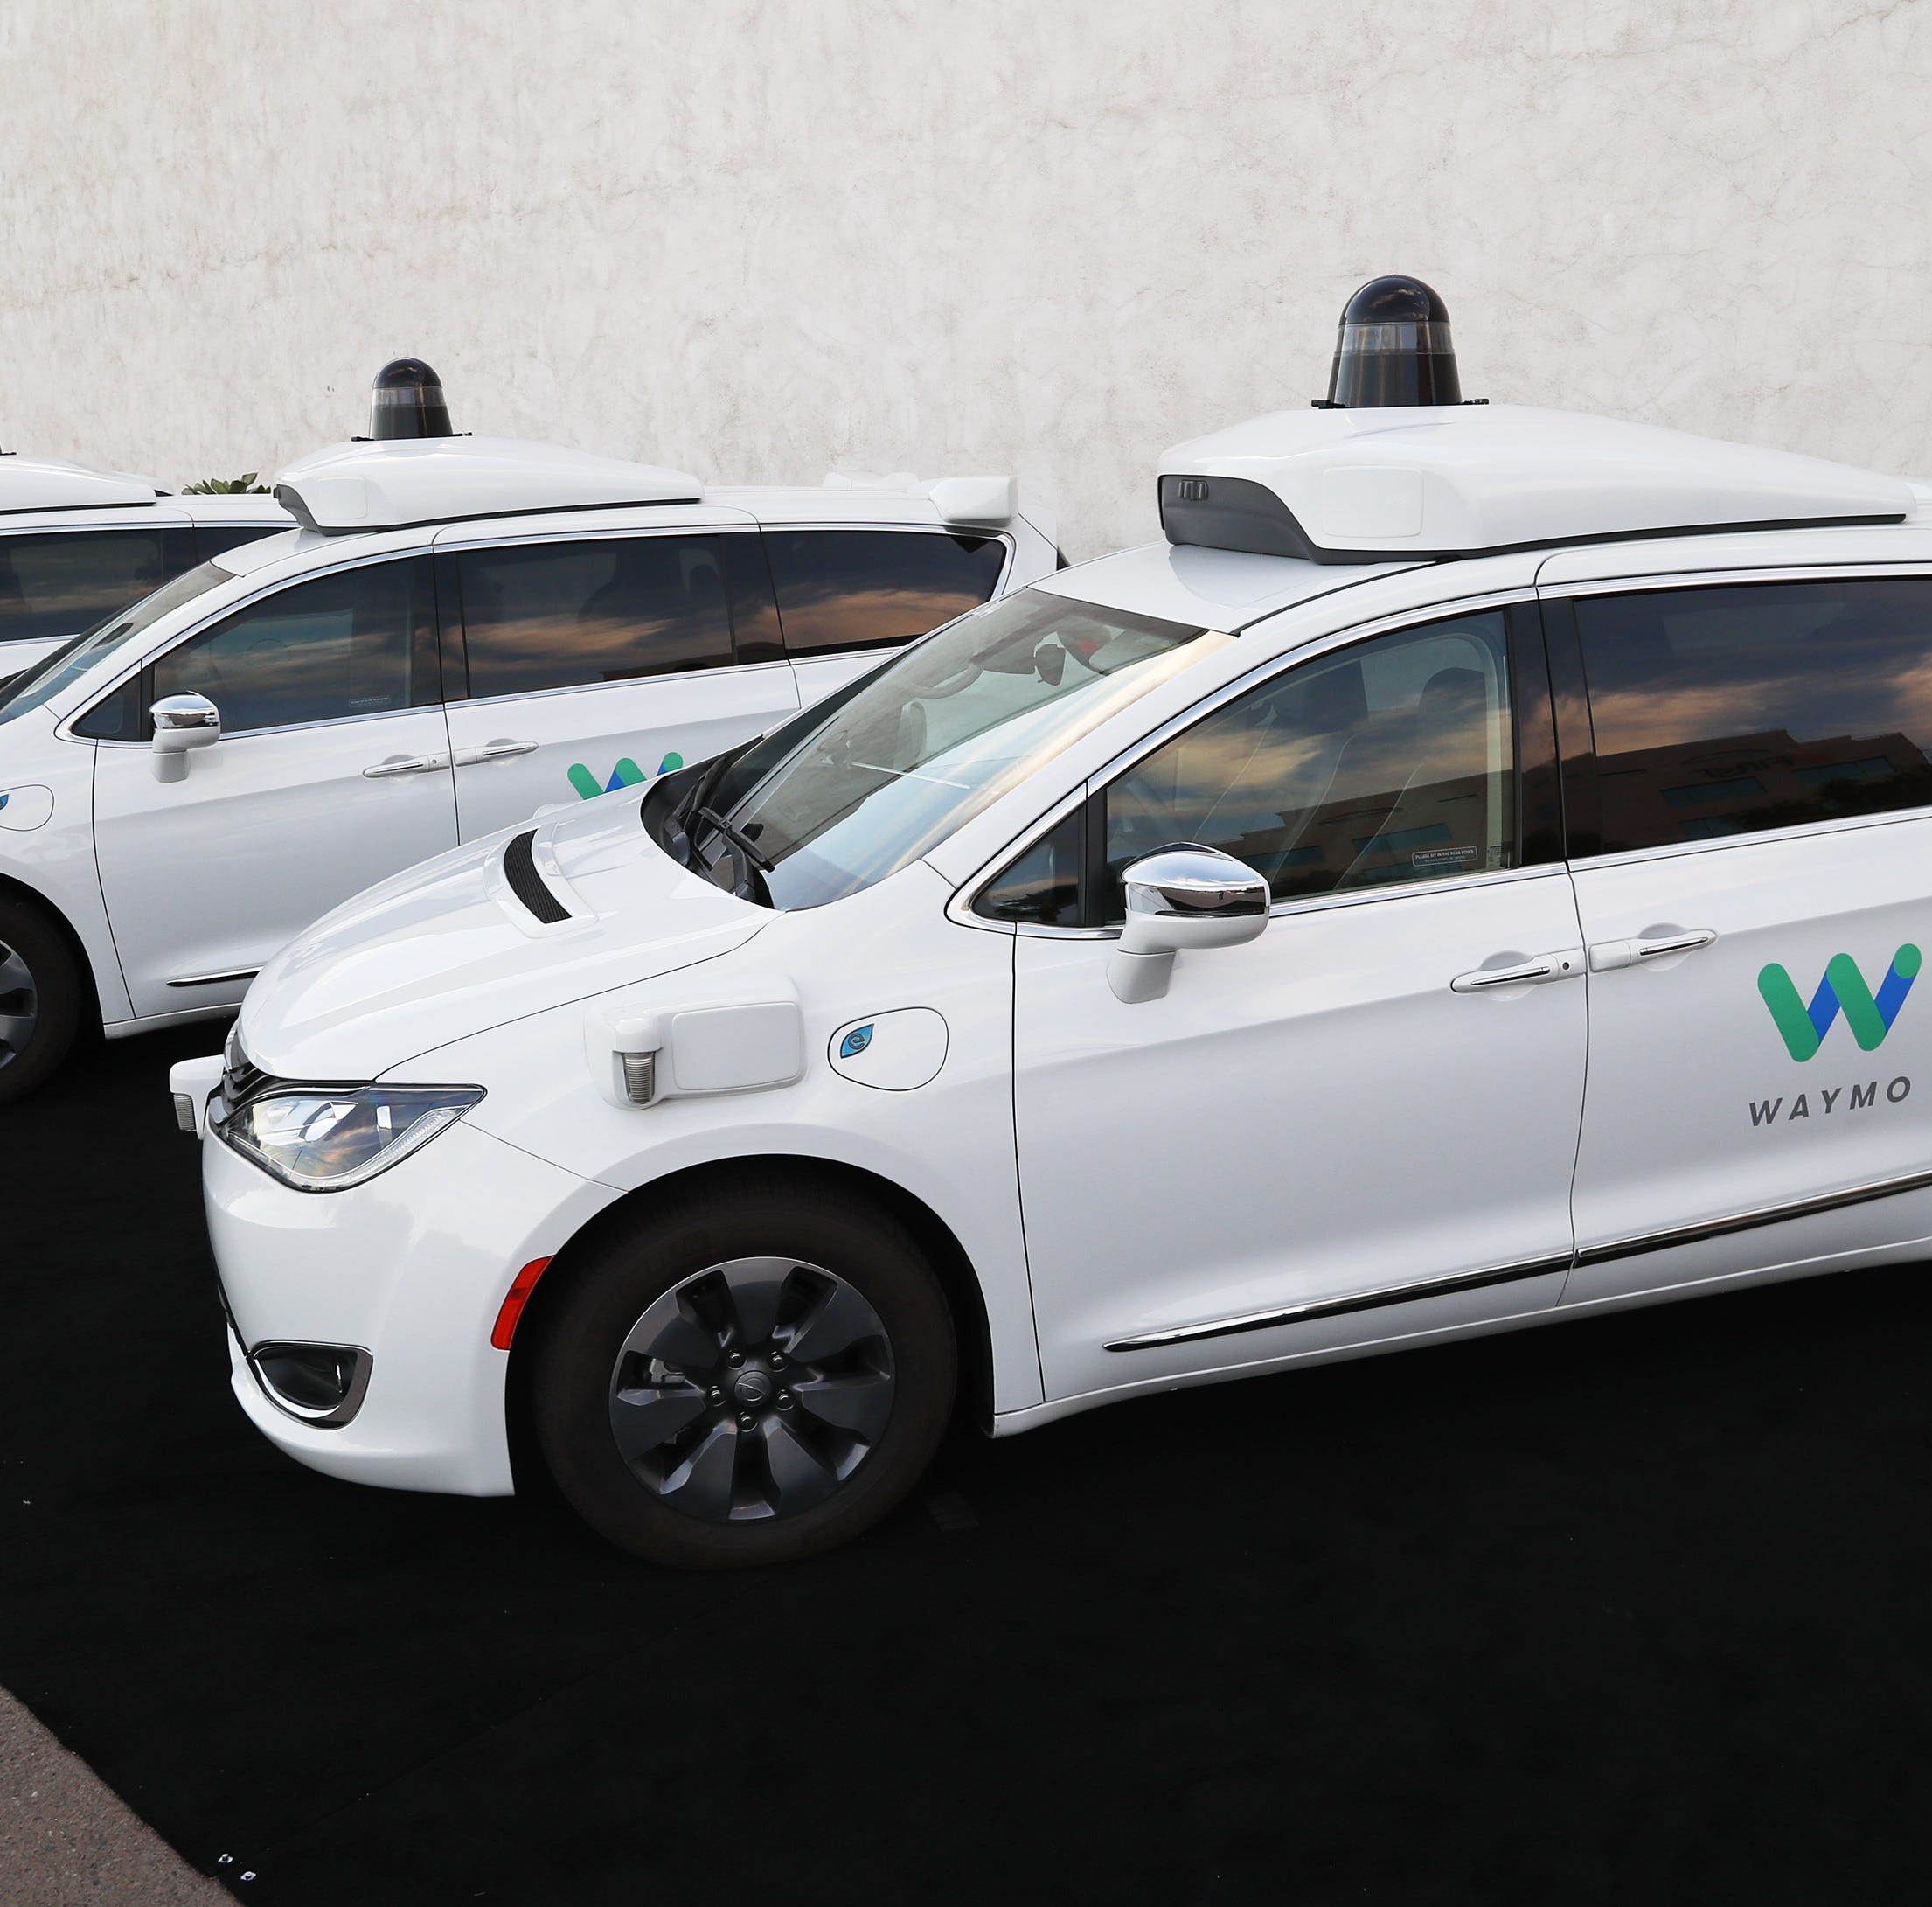 Lyft and Waymo team up to offer driverless rides in metro Phoenix